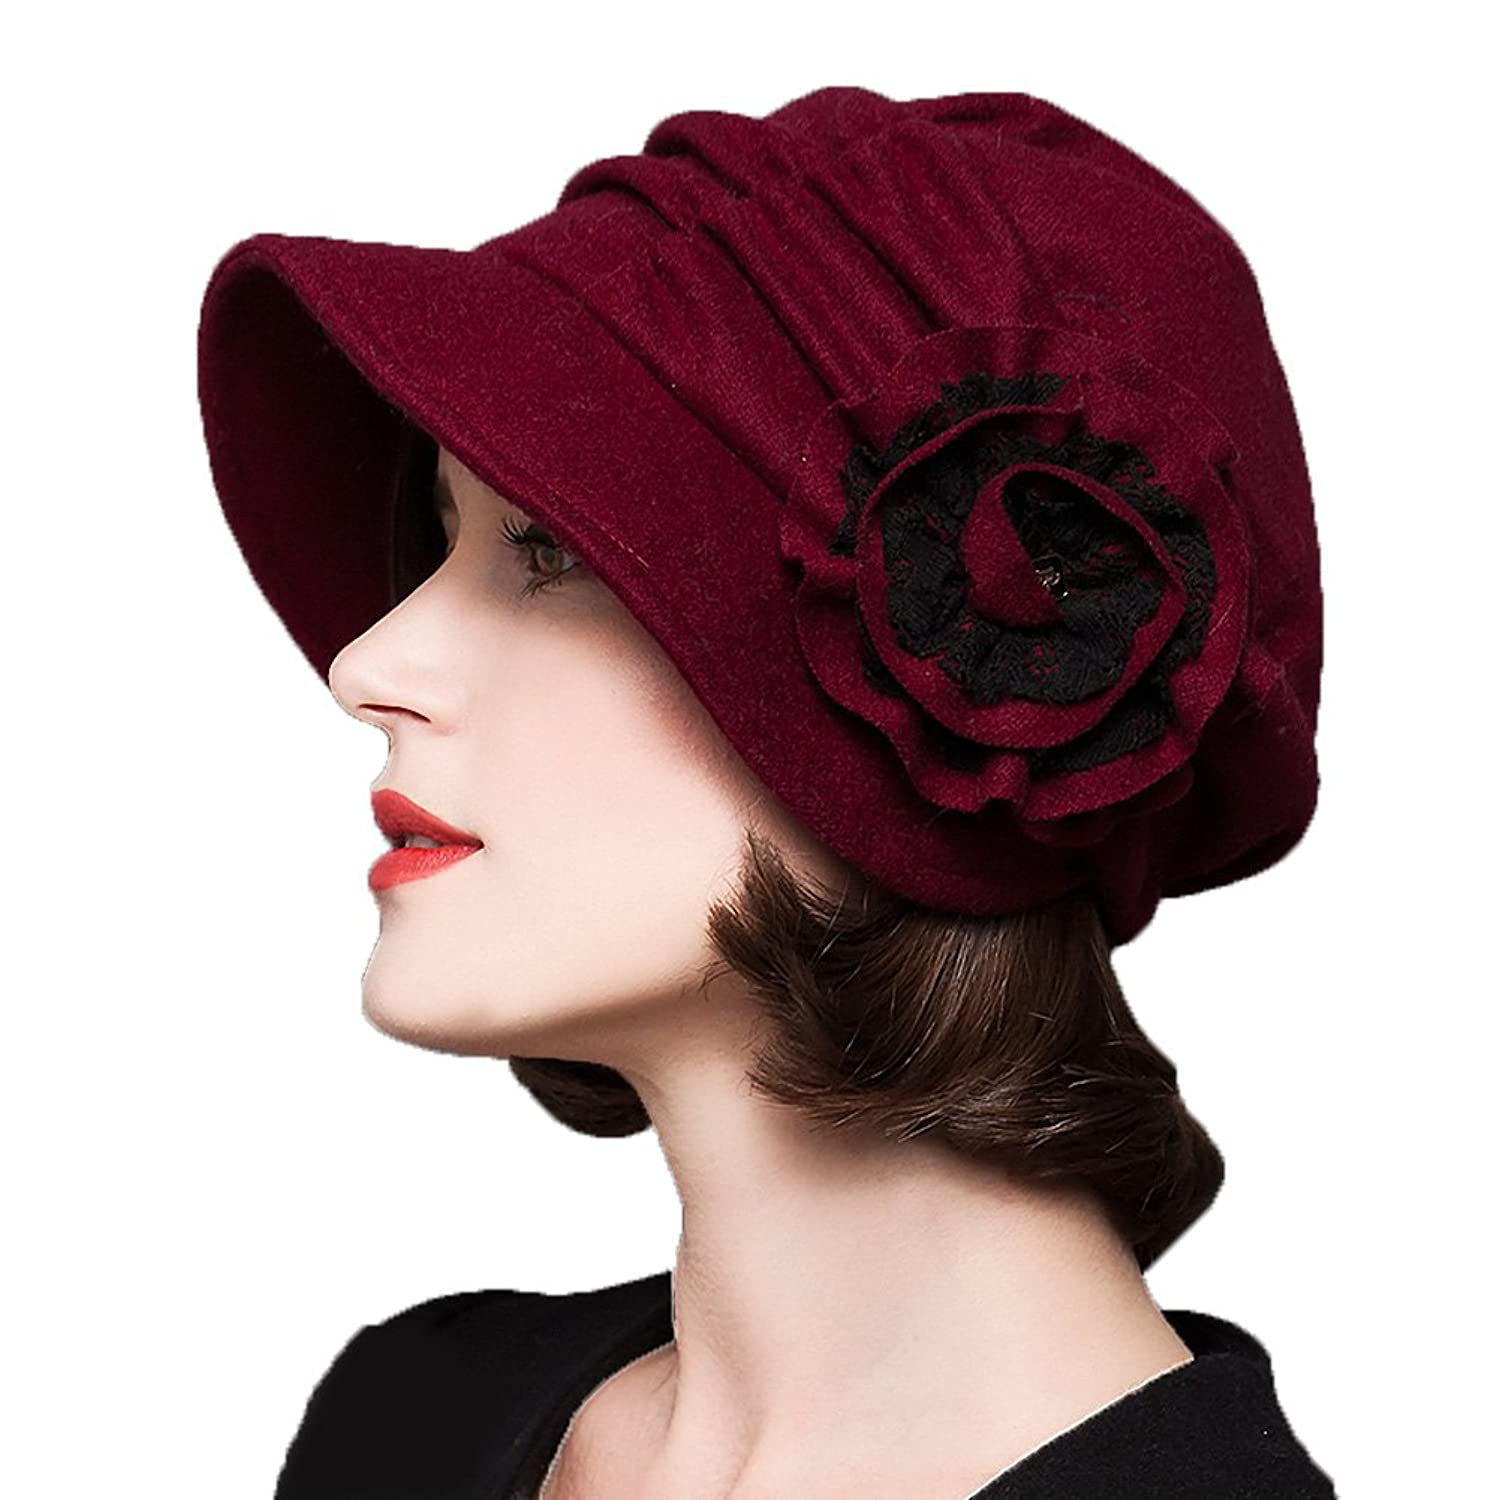 1920s Clothing Decorative Flowers Wool Beret Maitose Trade Womens Decorative Flowers Wool Beret $28.40 AT vintagedancer.com